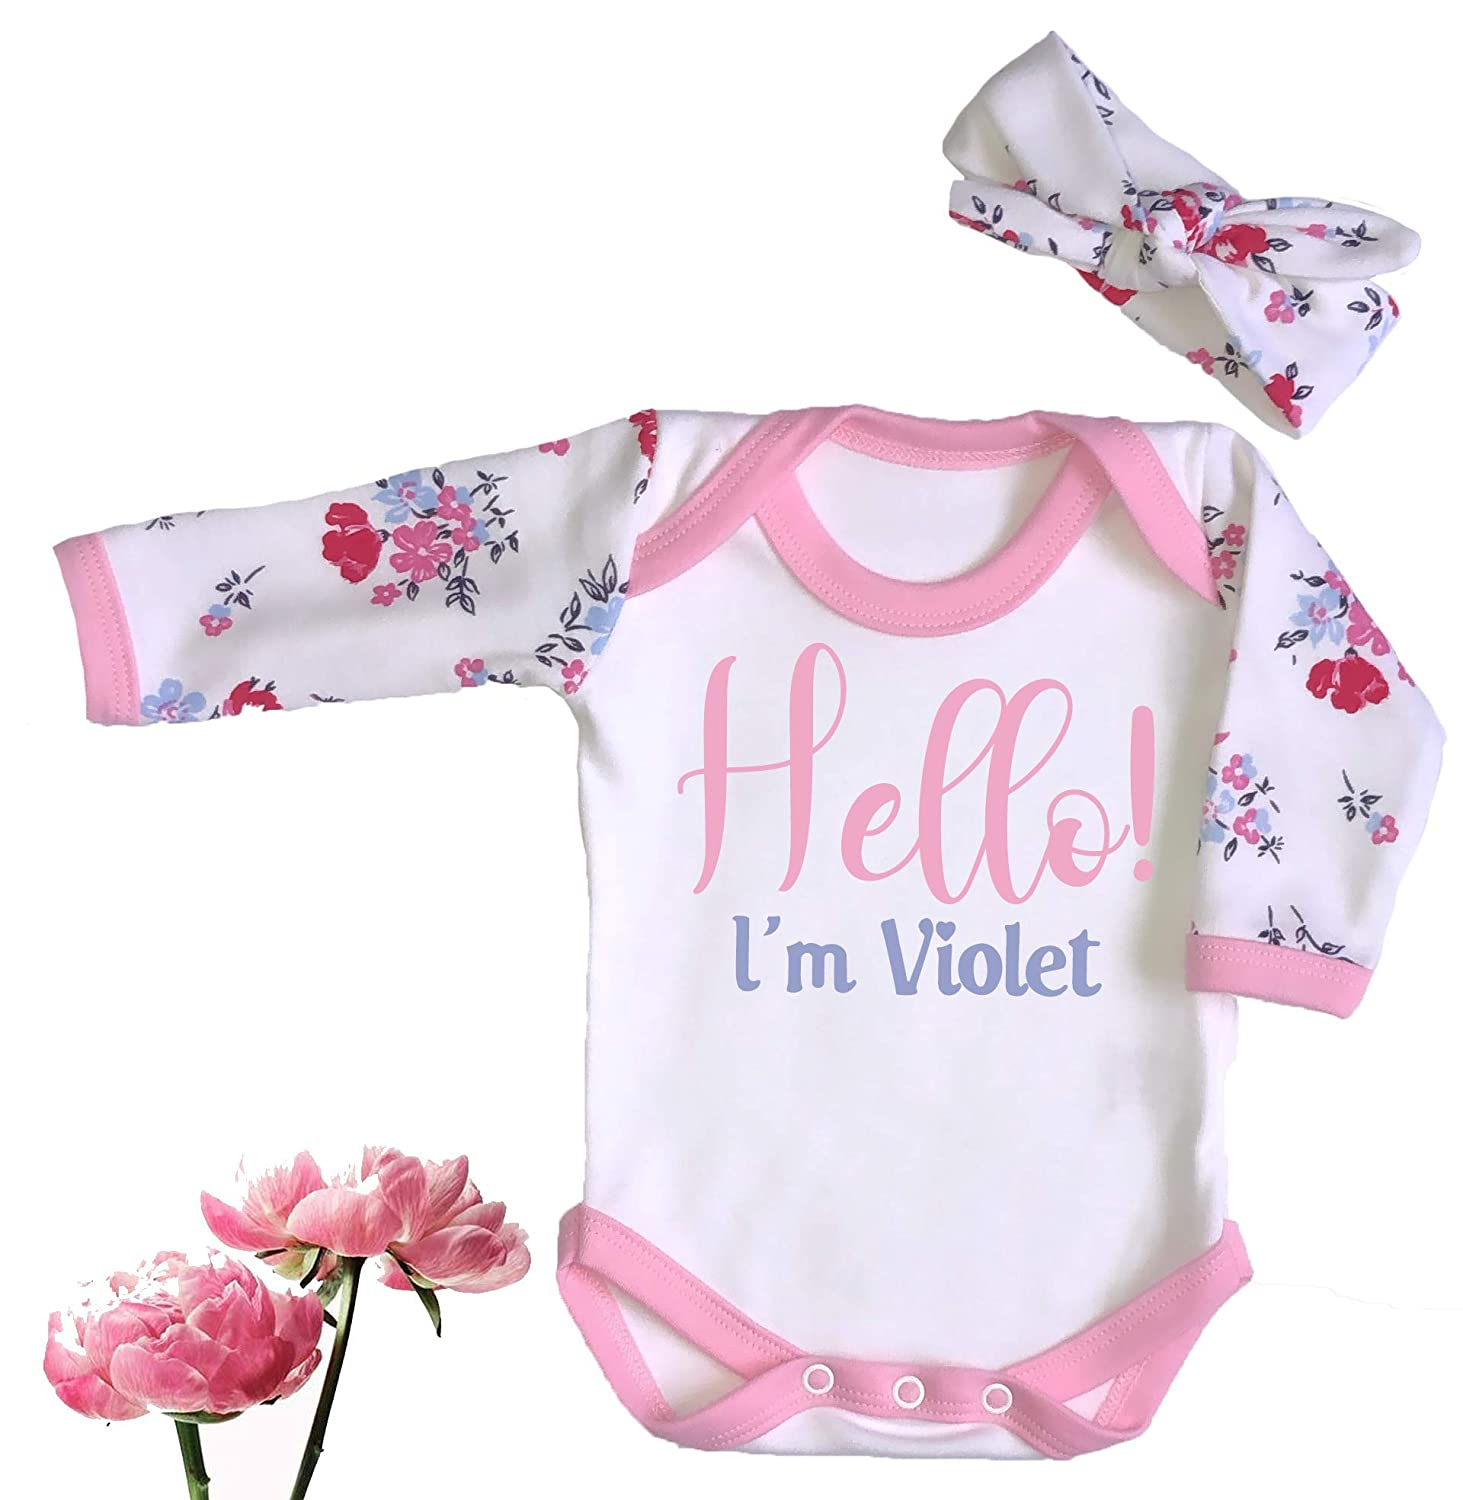 PERSONALISED Newborn//0-3 m Babygrow Hat /& Bib Baby SET